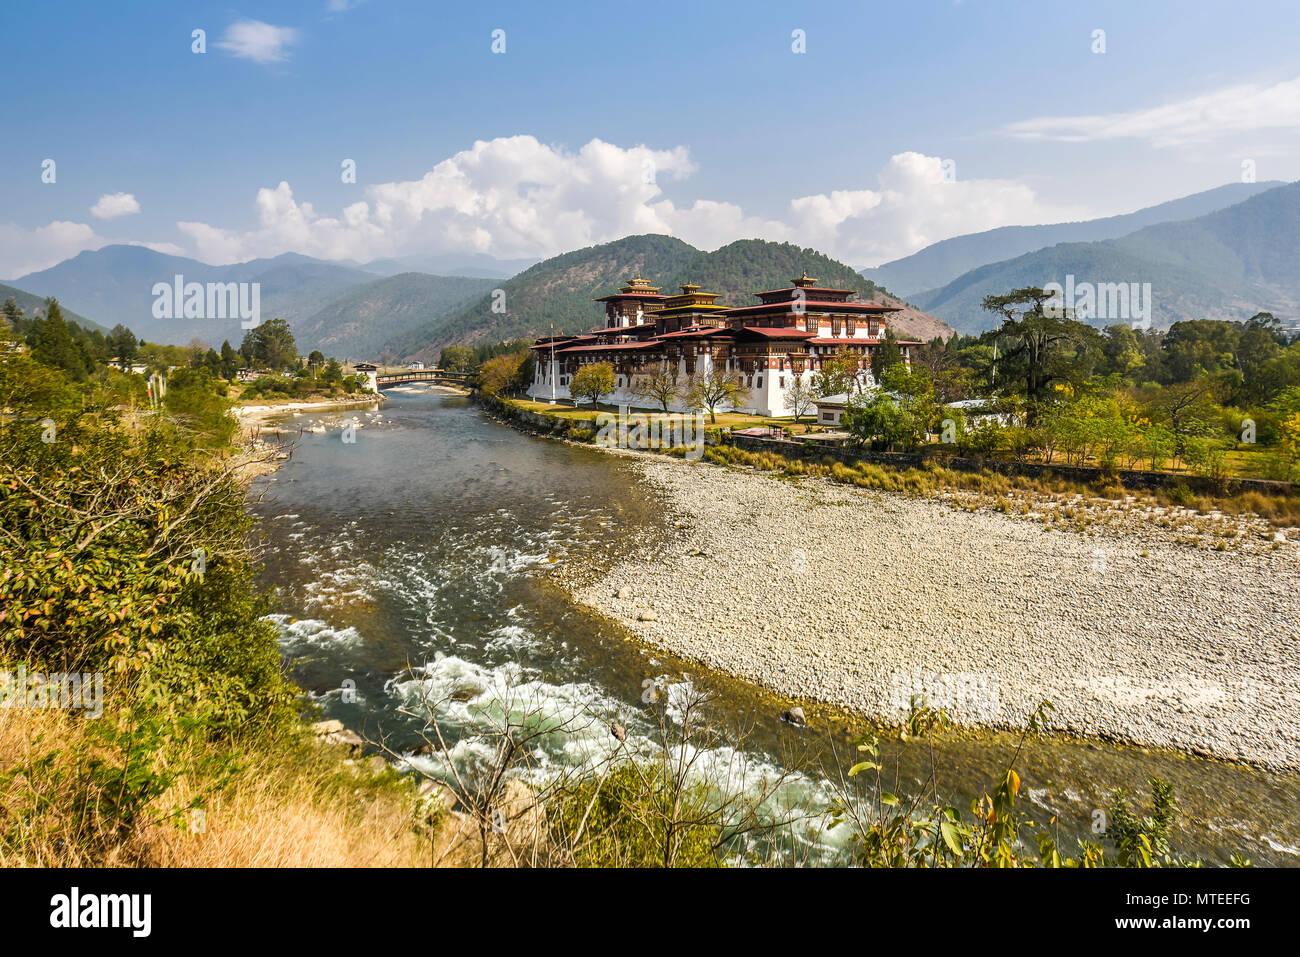 Buddhist monastery fortress Punakha Dzong at the river Mo Chhu, Punakha, Bhutan - Stock Image